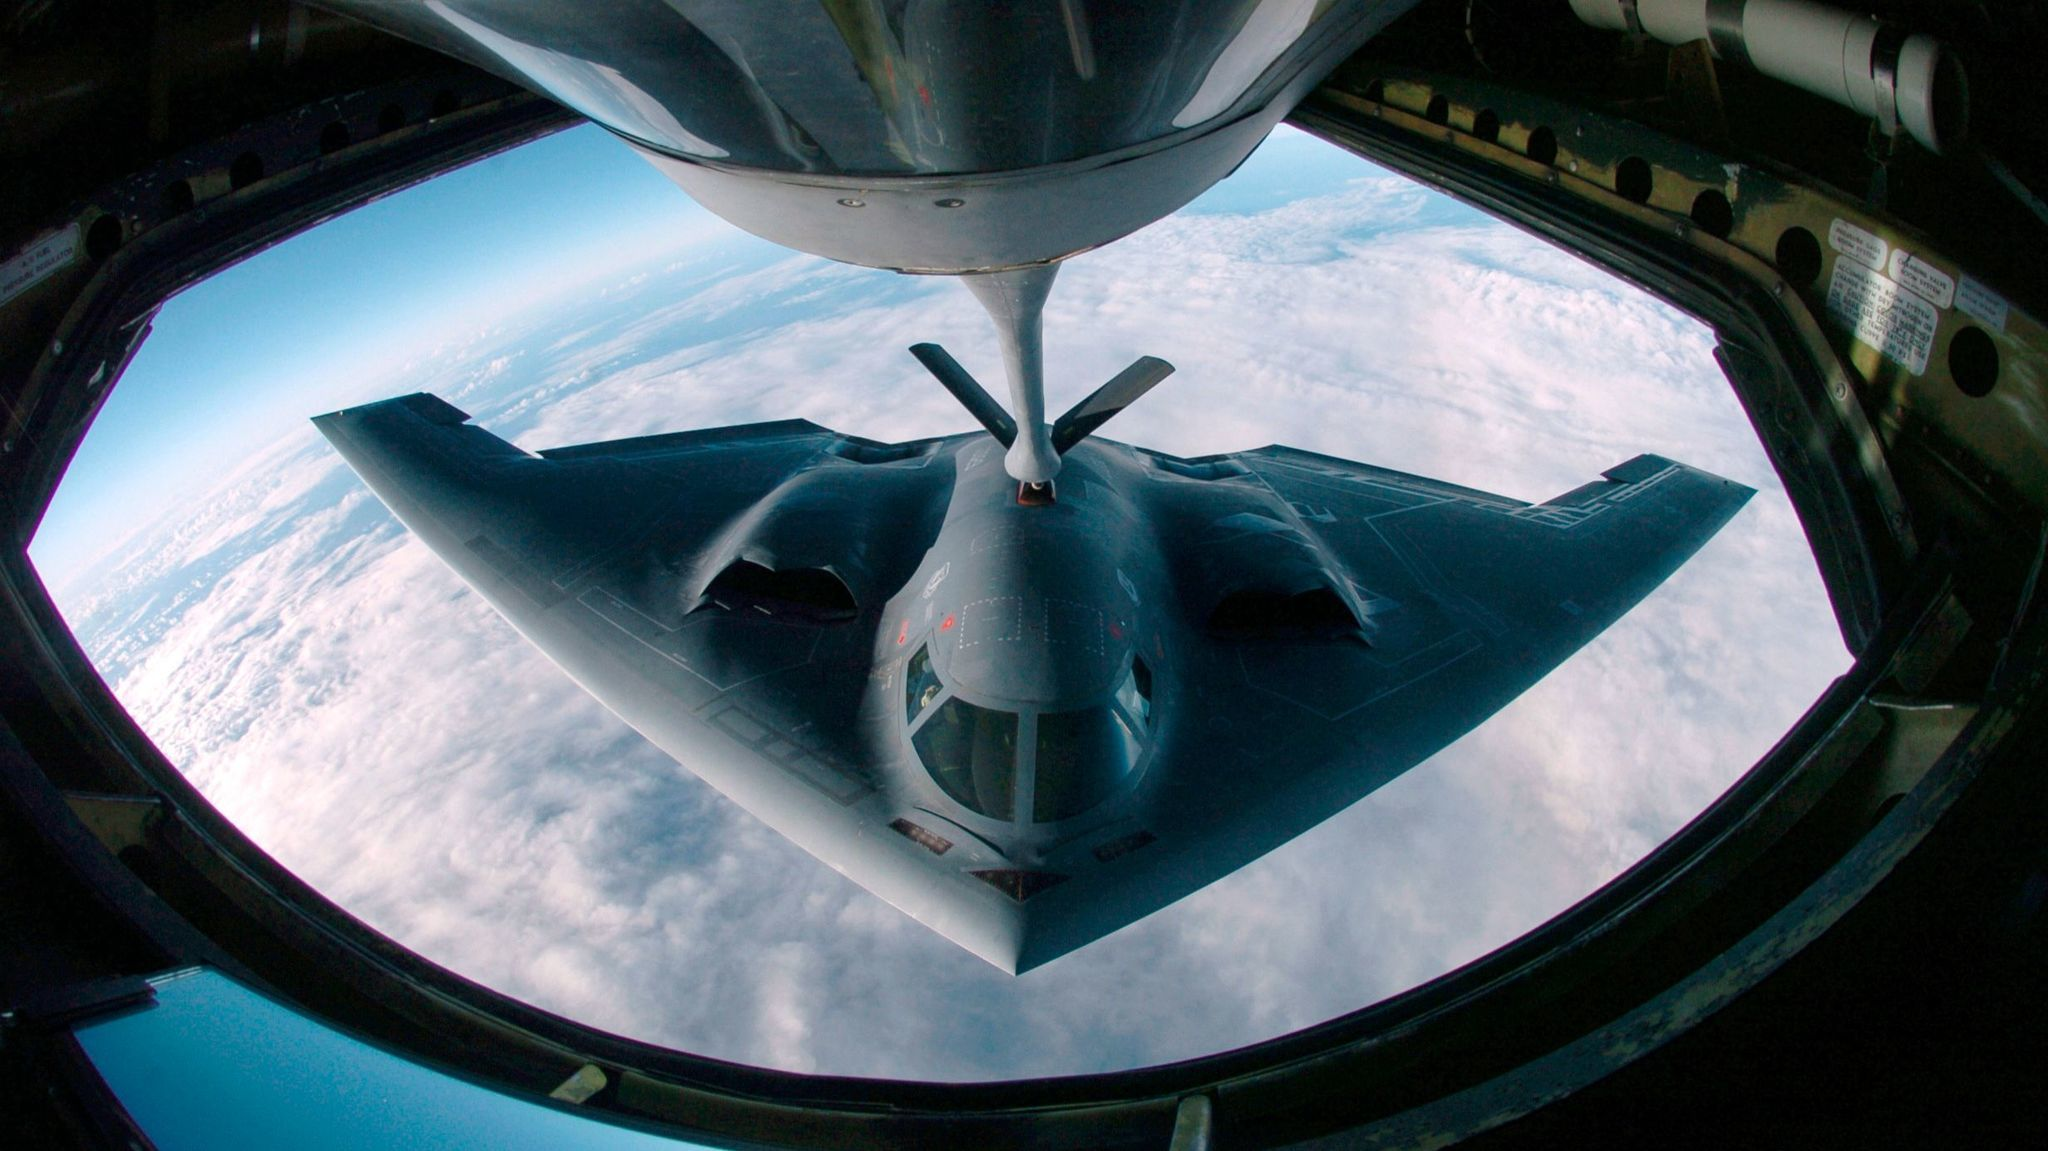 A B-2 bomber refueling from a KC-135 Stratotanker over the Pacific Ocean. The B-21 will be designed to be even stealthier than the B-2.